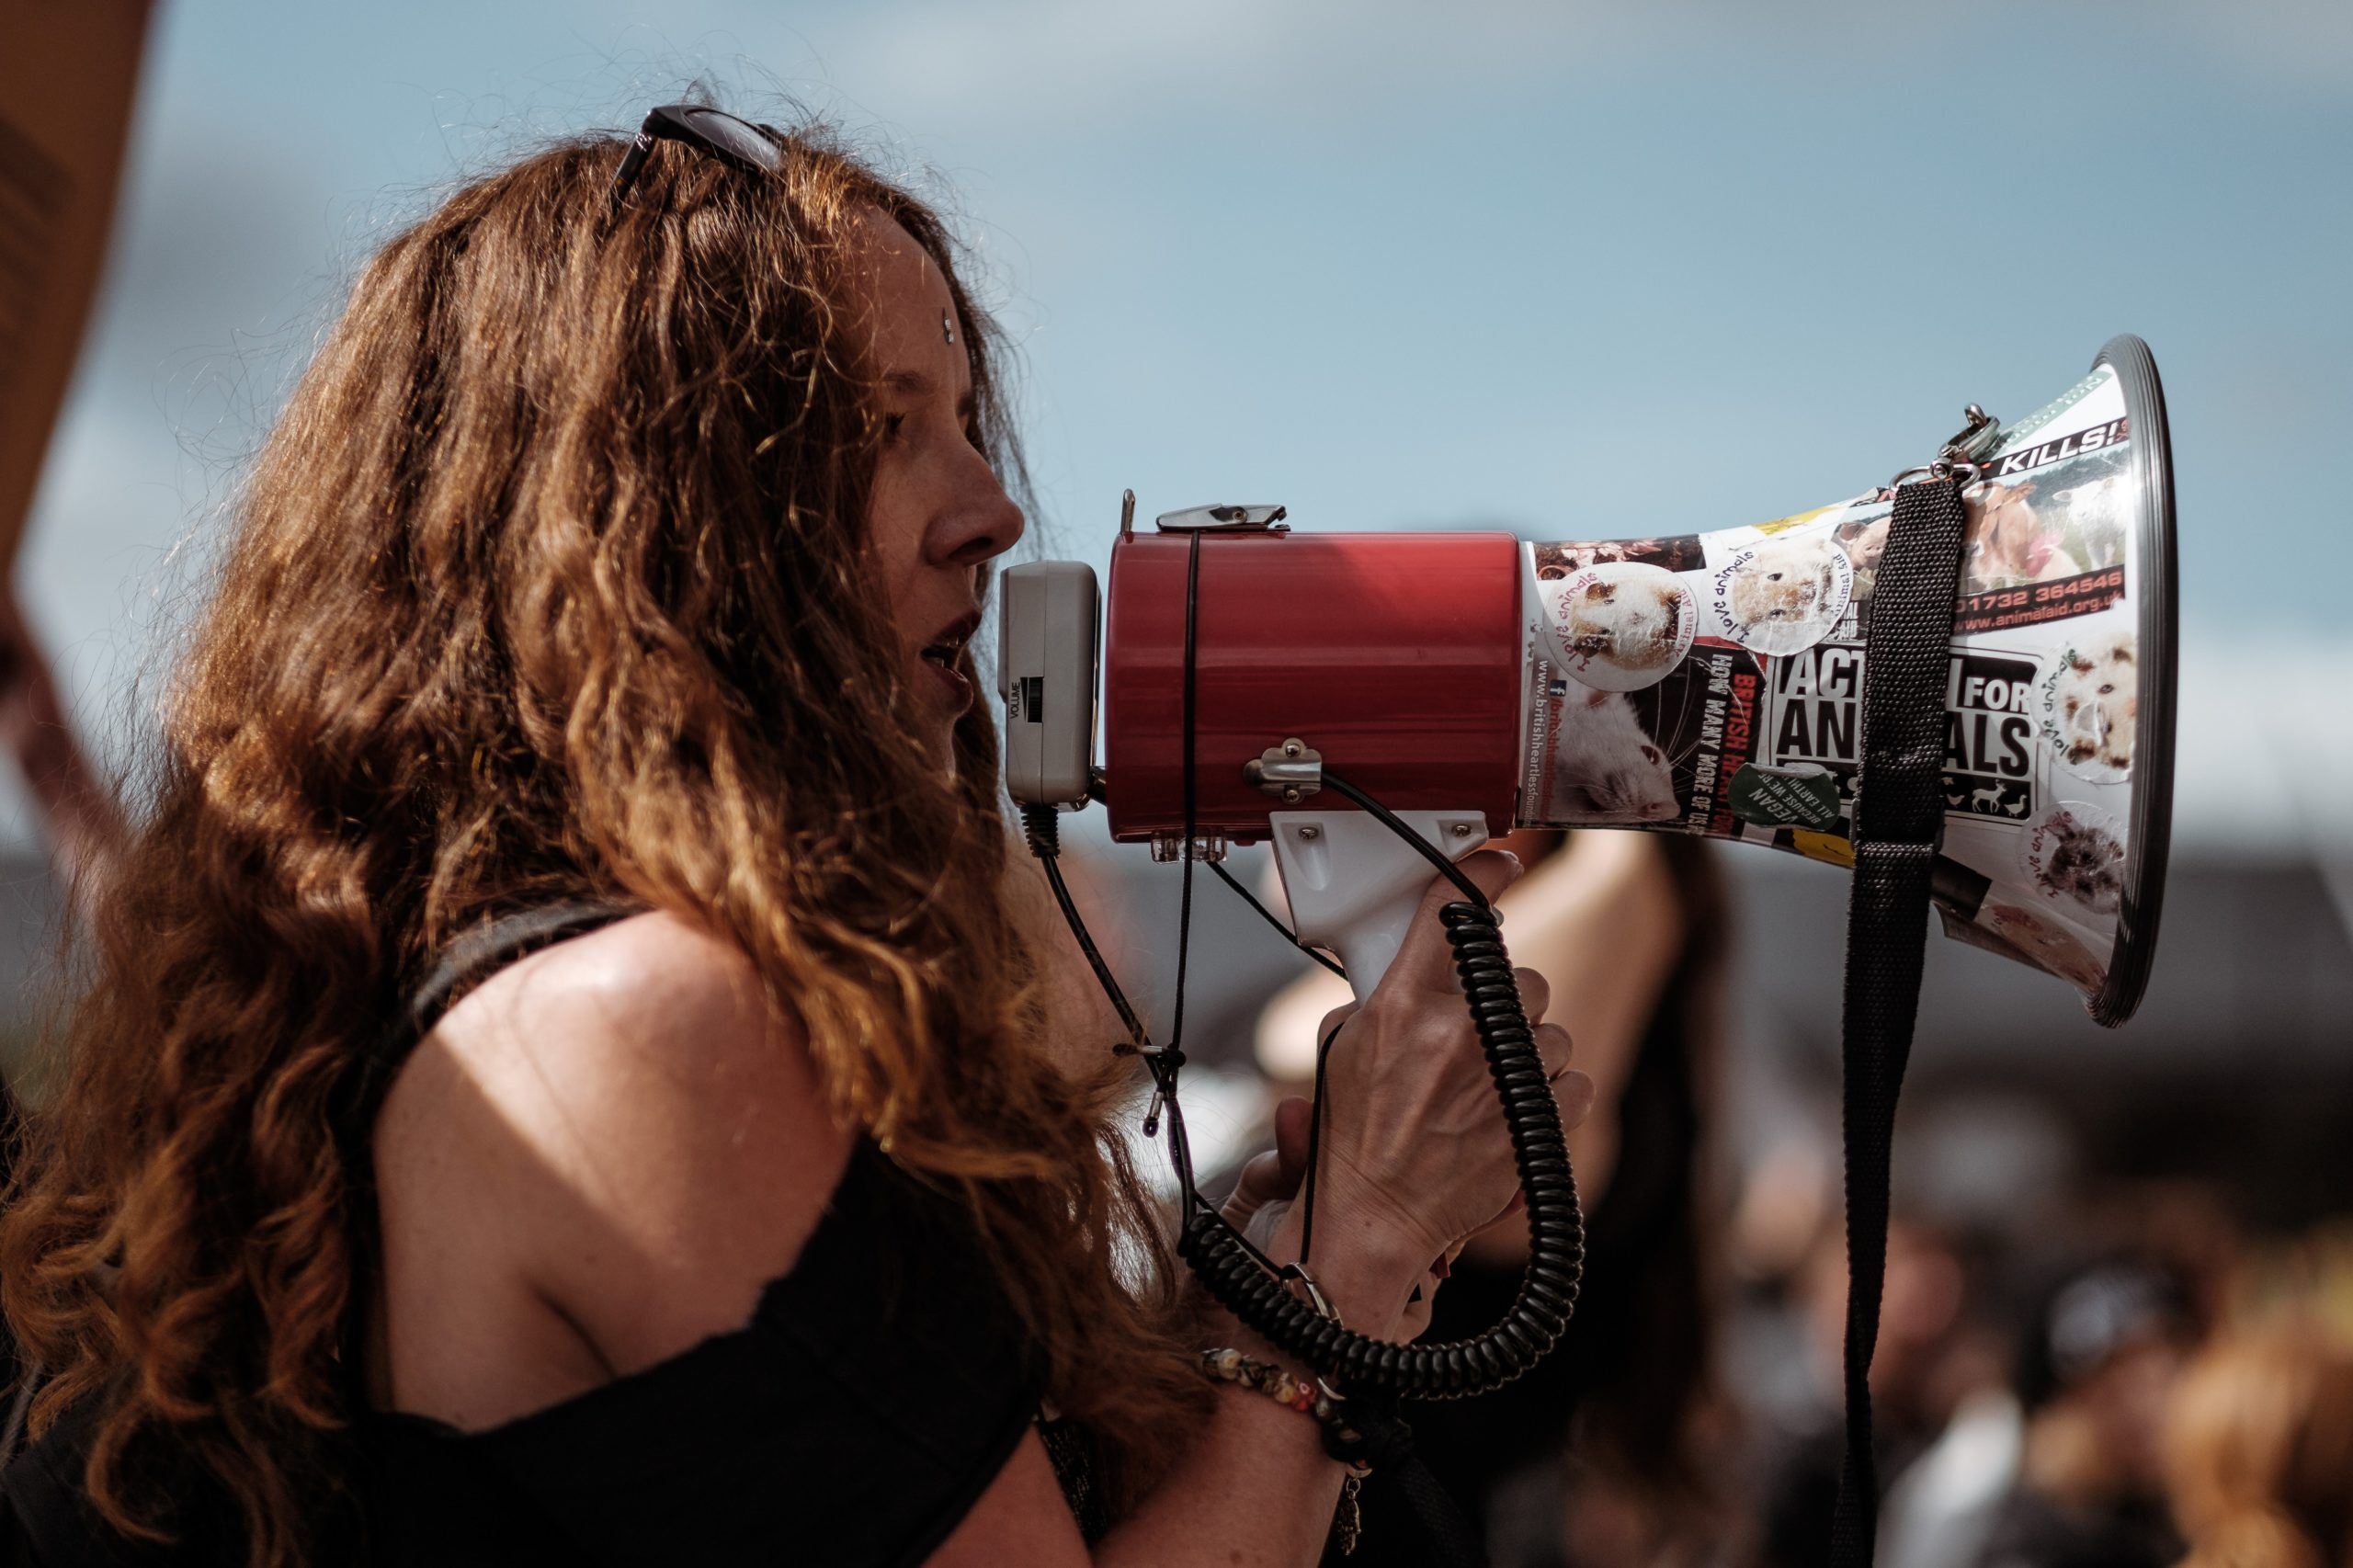 A woman with long brown hair speaking into a megaphone